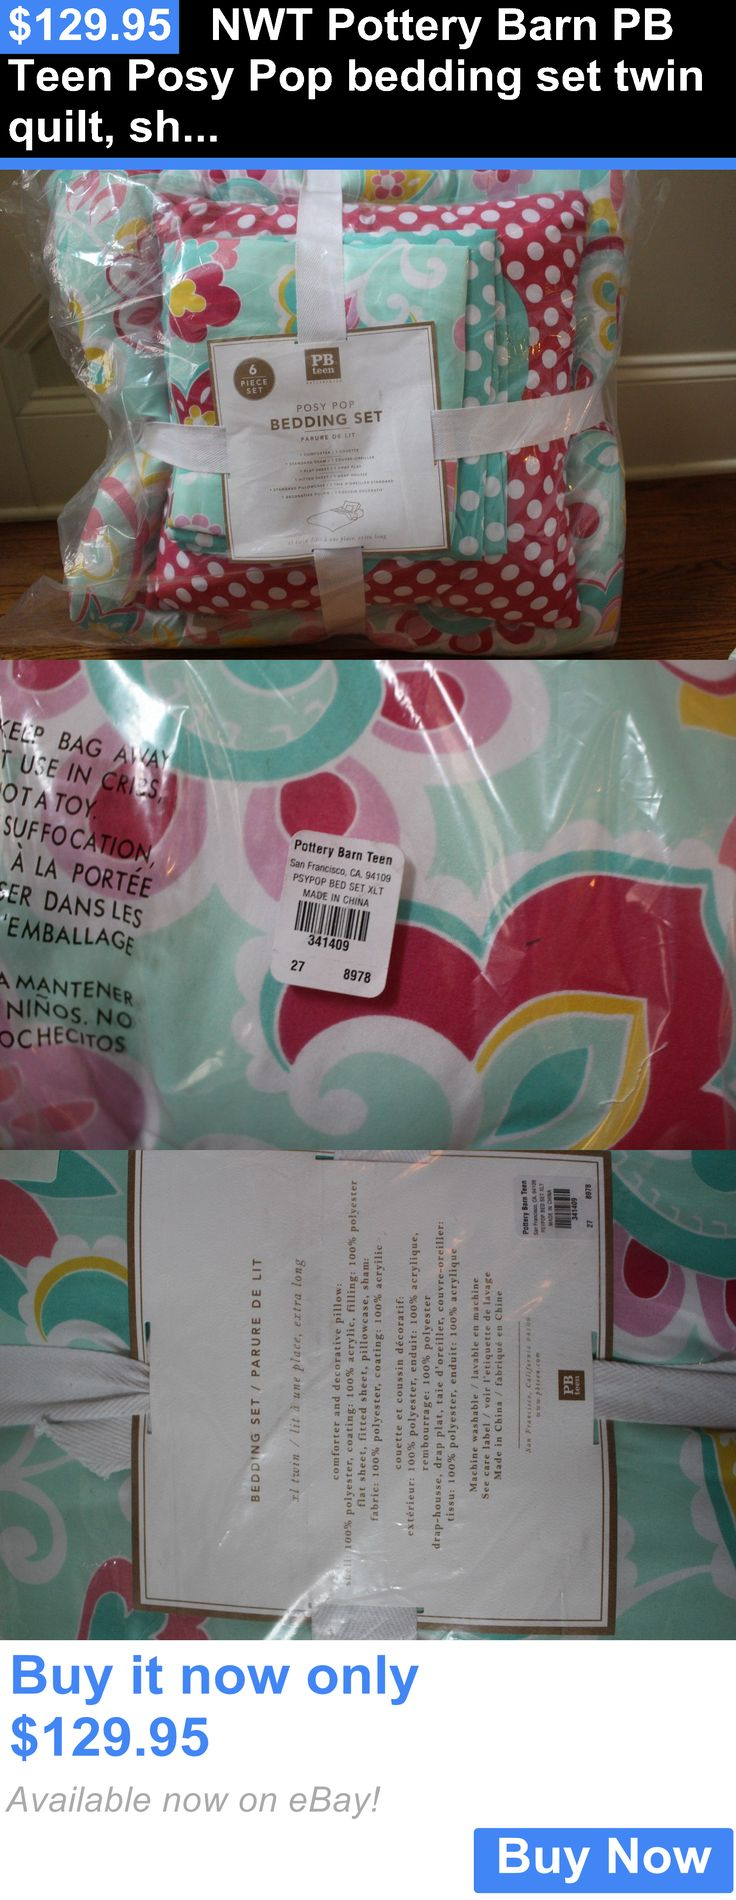 Kids Bedding: Nwt Pottery Barn Pb Teen Posy Pop Bedding Set Twin Quilt, Sham Sheet And Pillow BUY IT NOW ONLY: $129.95